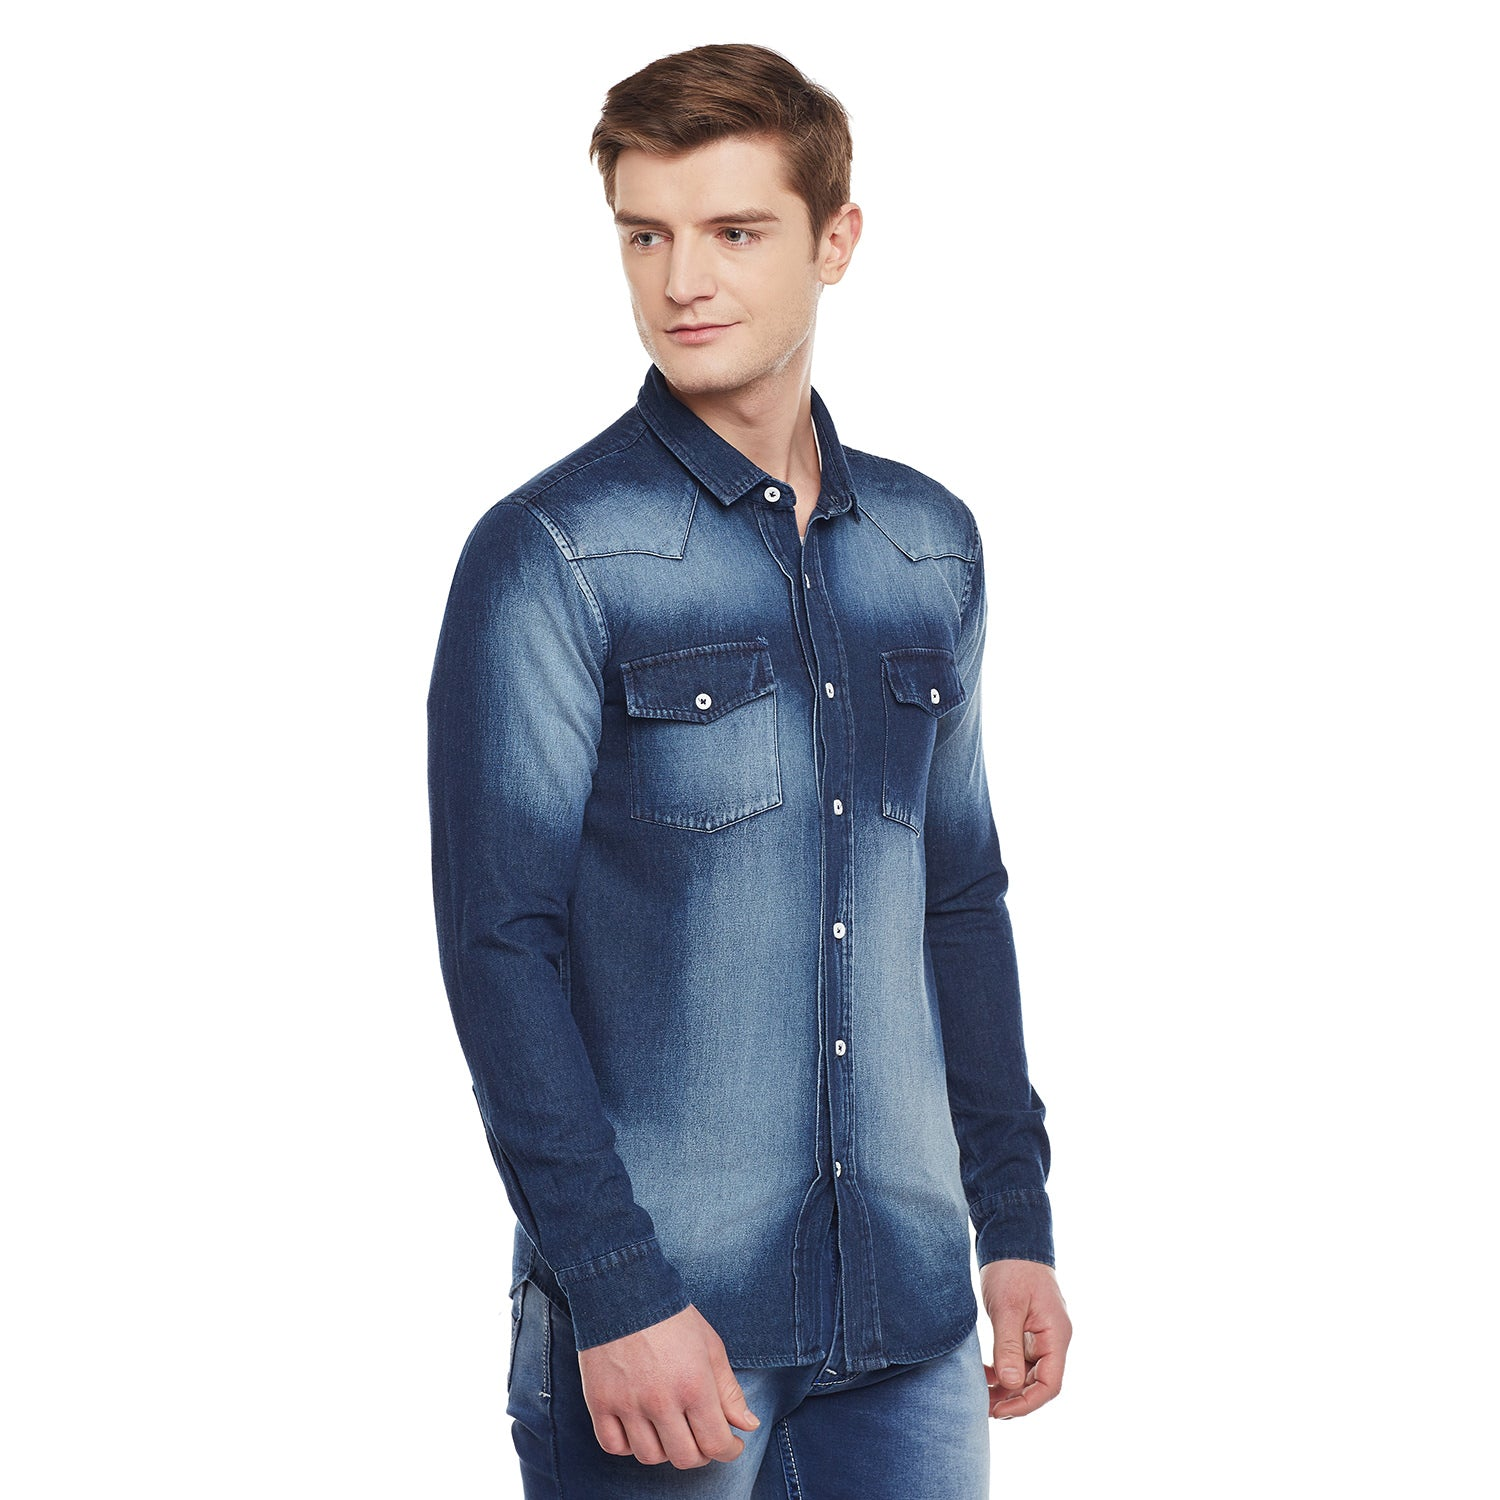 Atorse Mens Full Sleeve Denim Shirt With Abstract Denim Wash